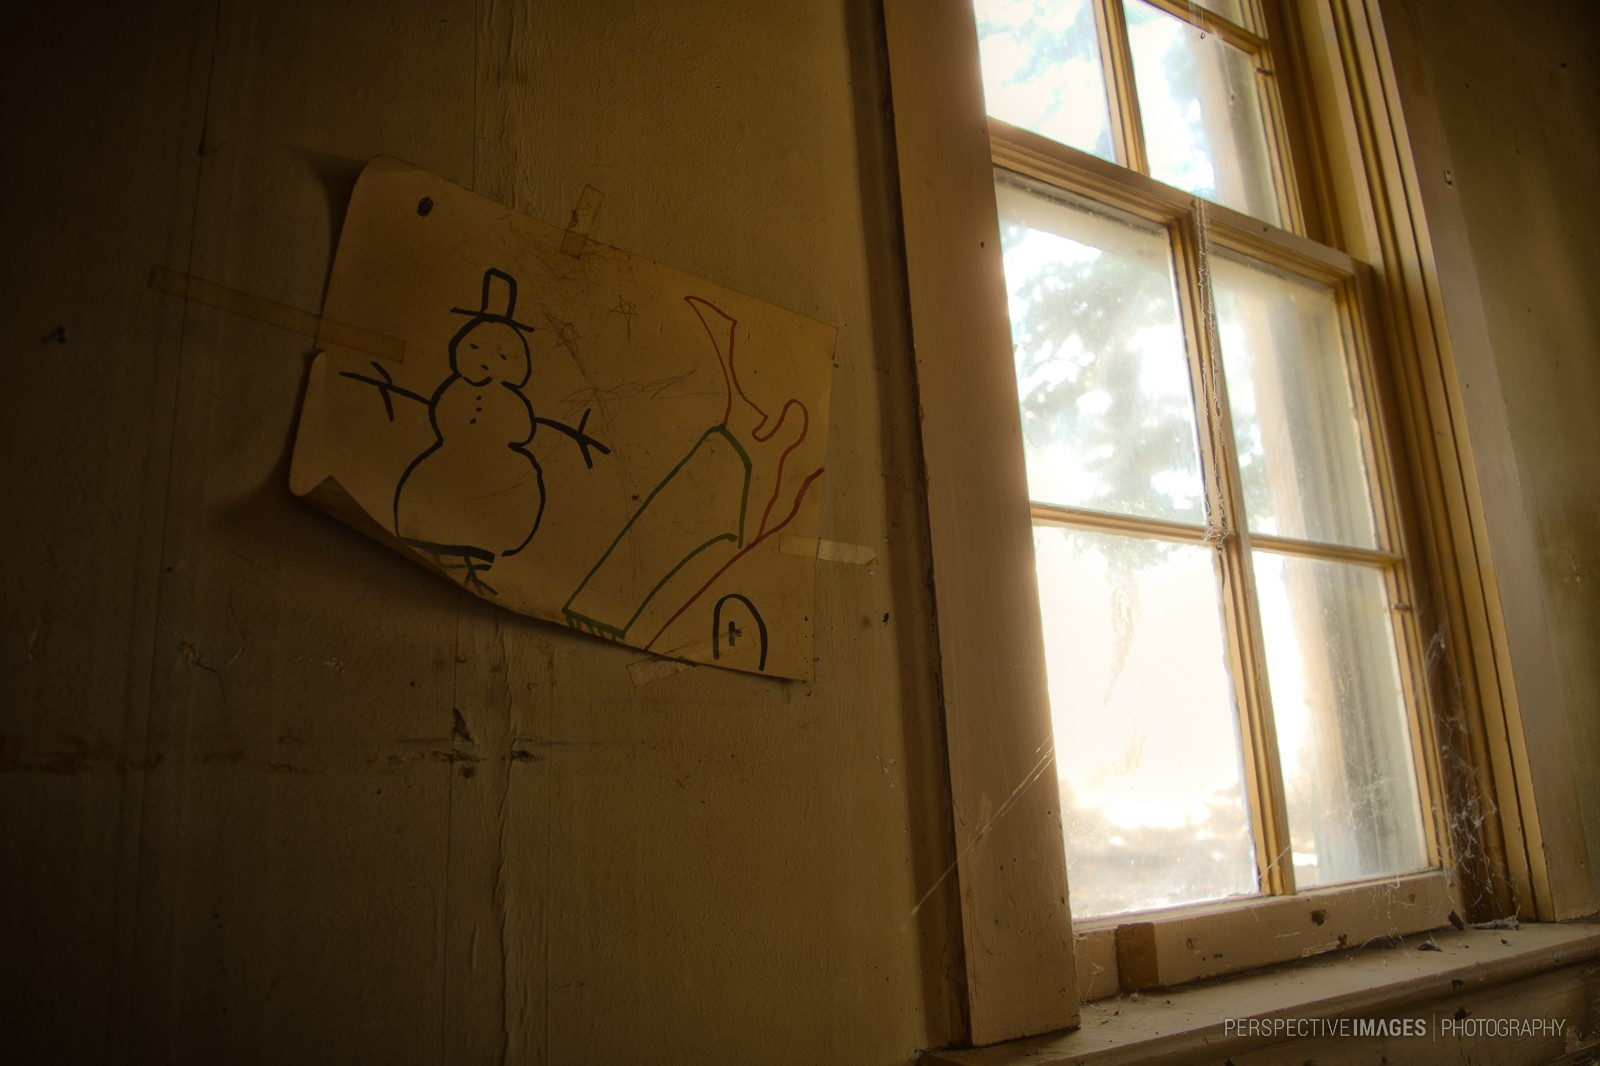 I Drew This For You - A child's drawing still hangs near the window of an abandoned house.